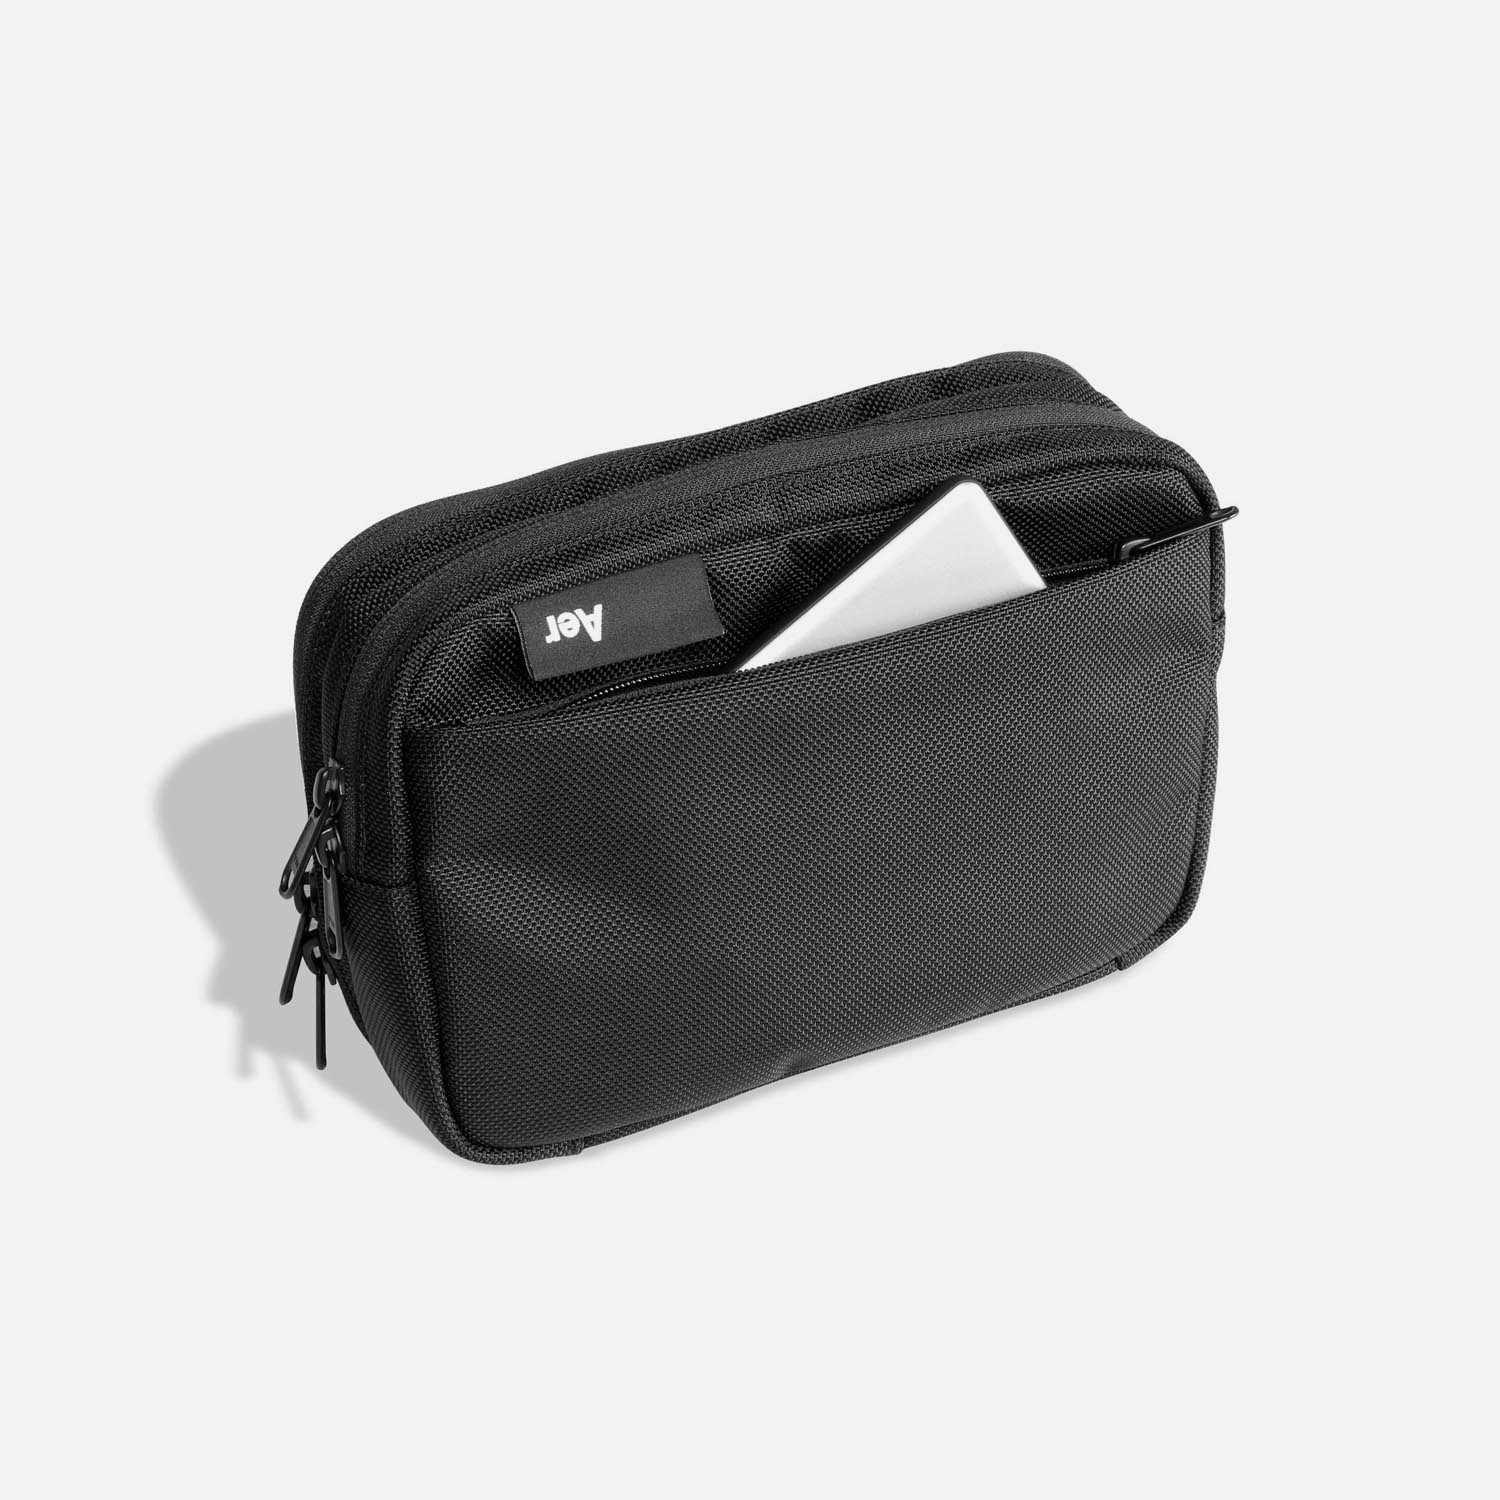 Quick access pocket for additional storage.